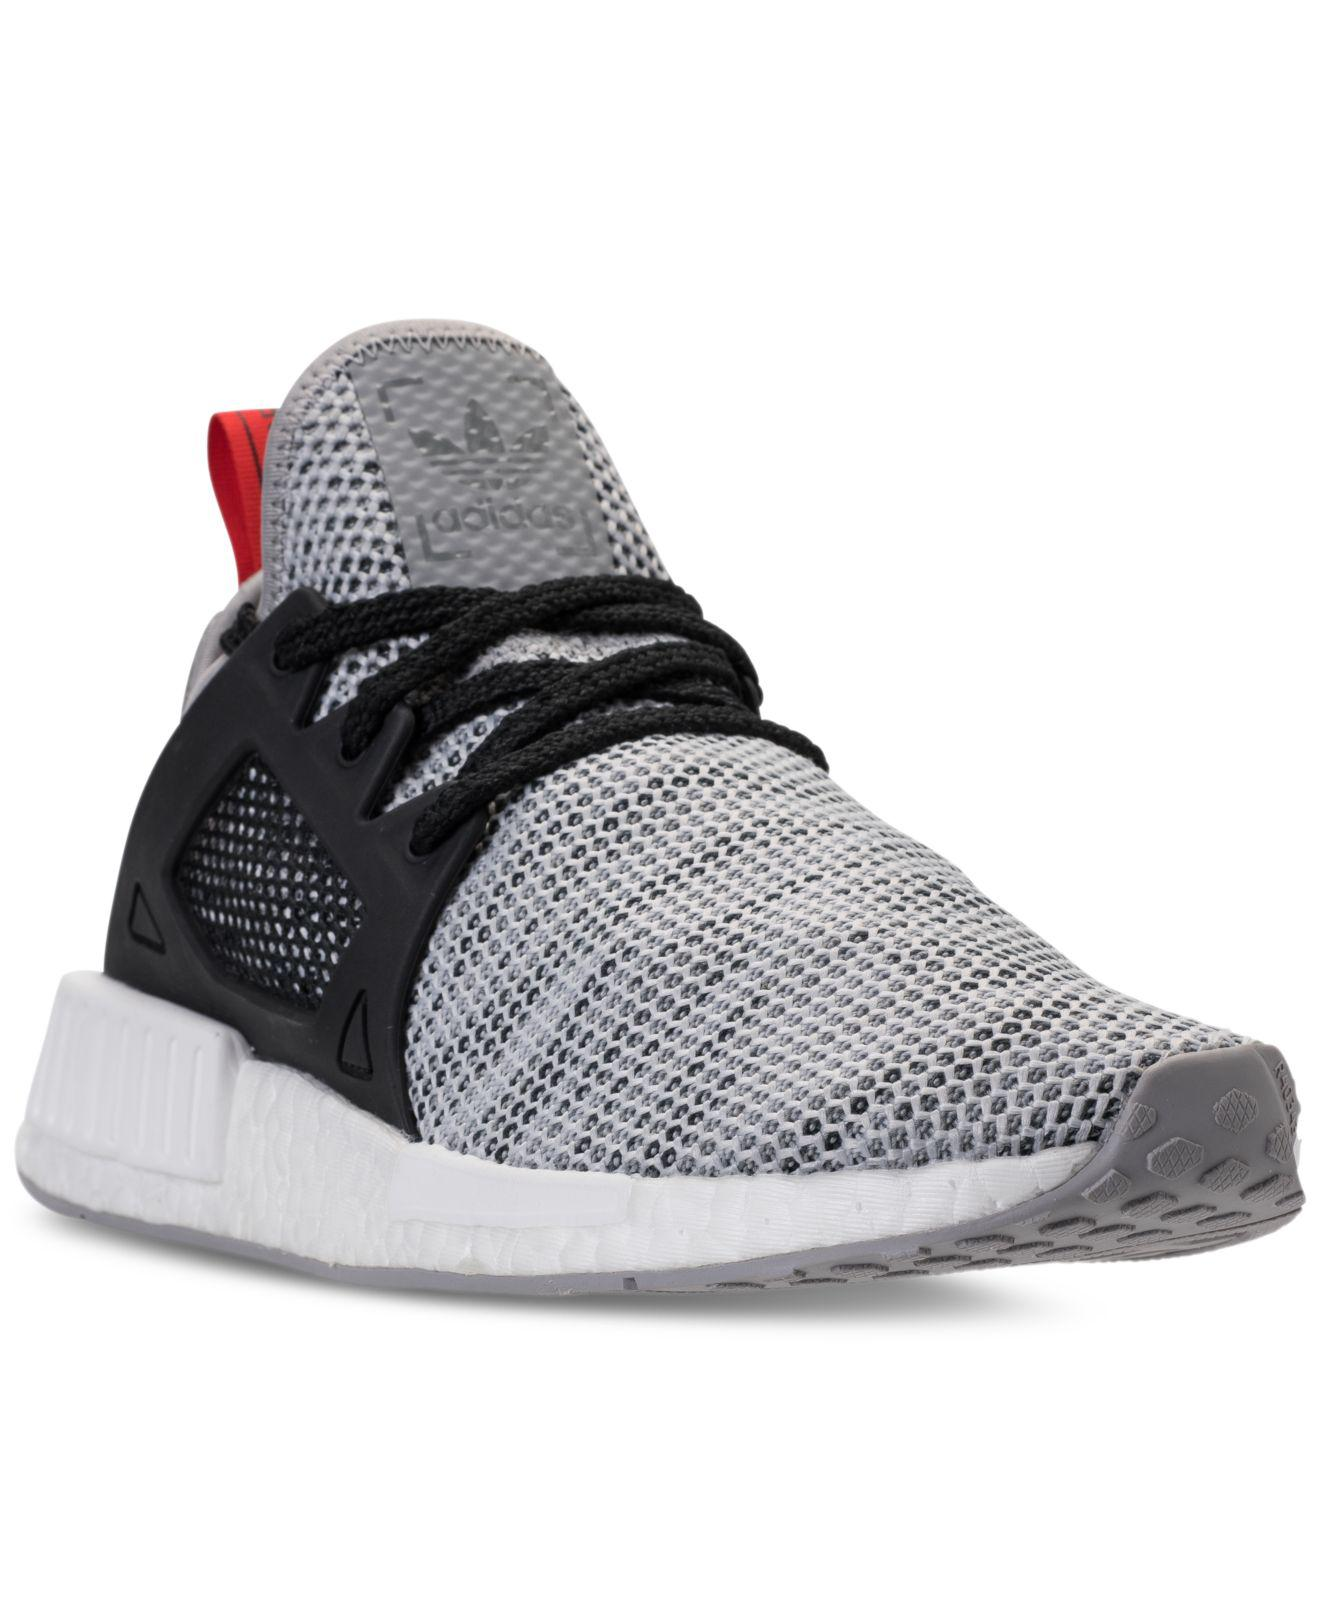 c7863bede3bfe Lyst - Adidas Originals Men's Nmd Xr1 Primeknit Casual Sneakers From ...